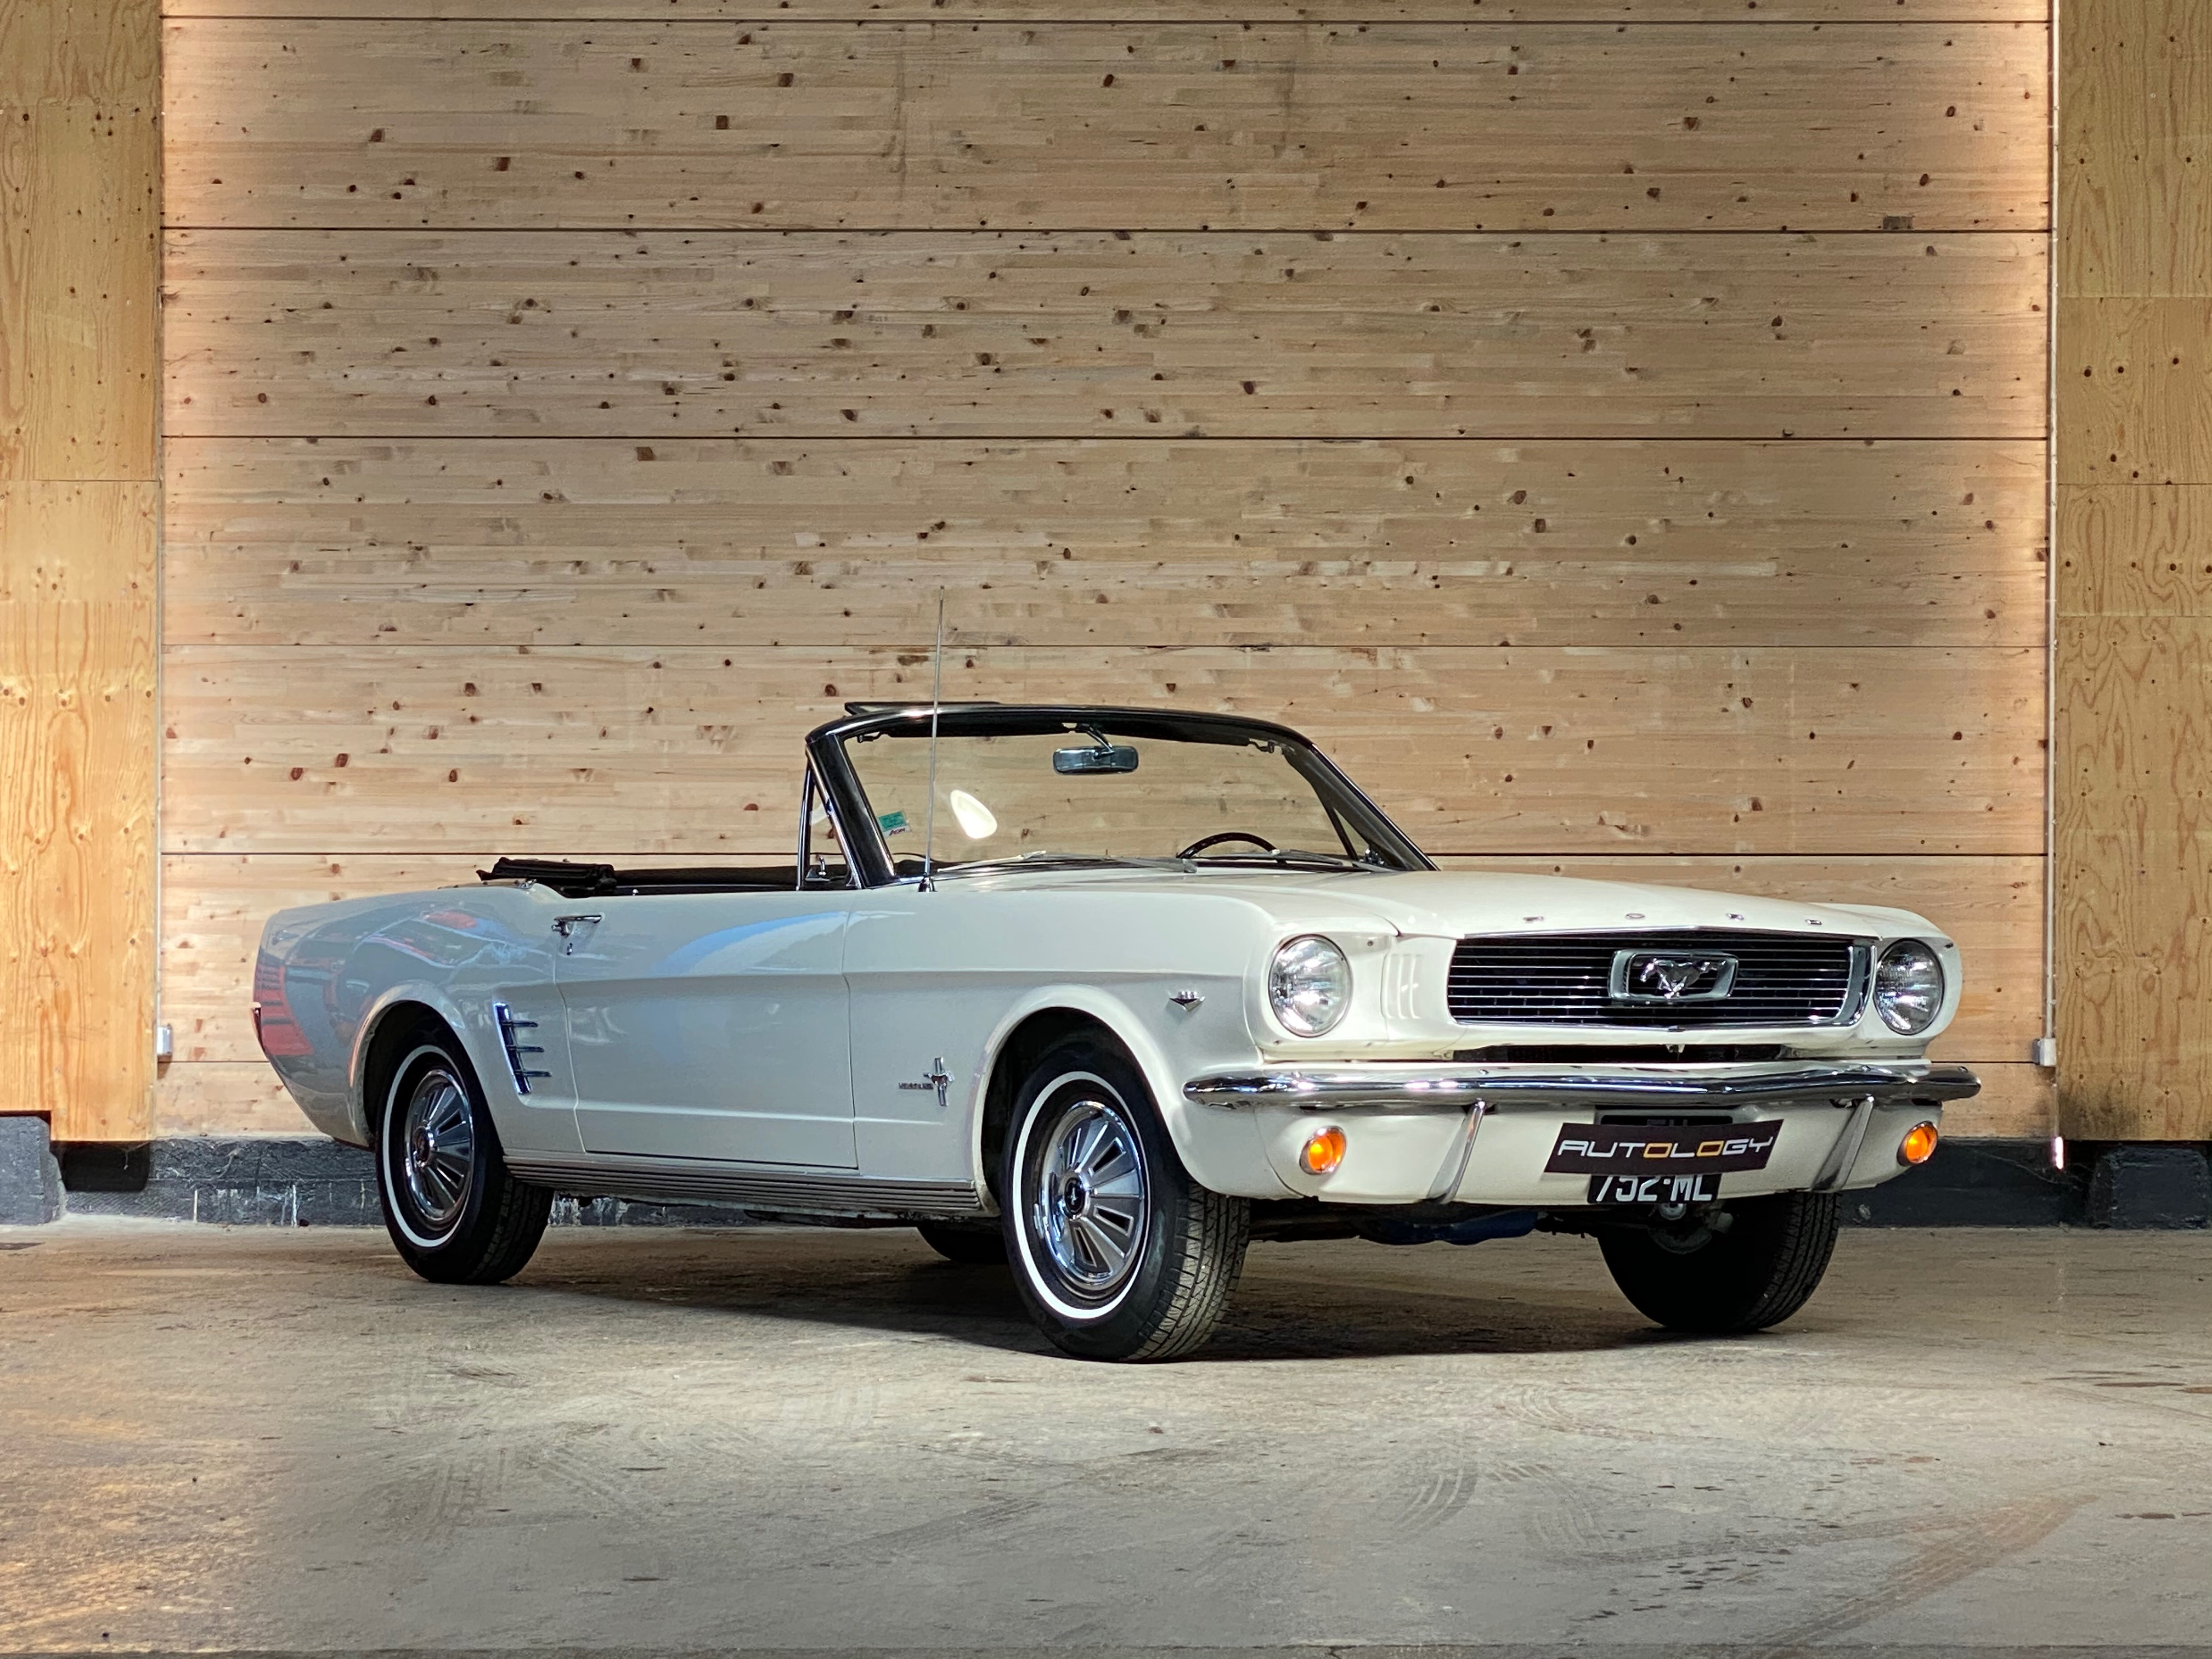 Ford Mustang V8 289 « Code A » Cabriolet